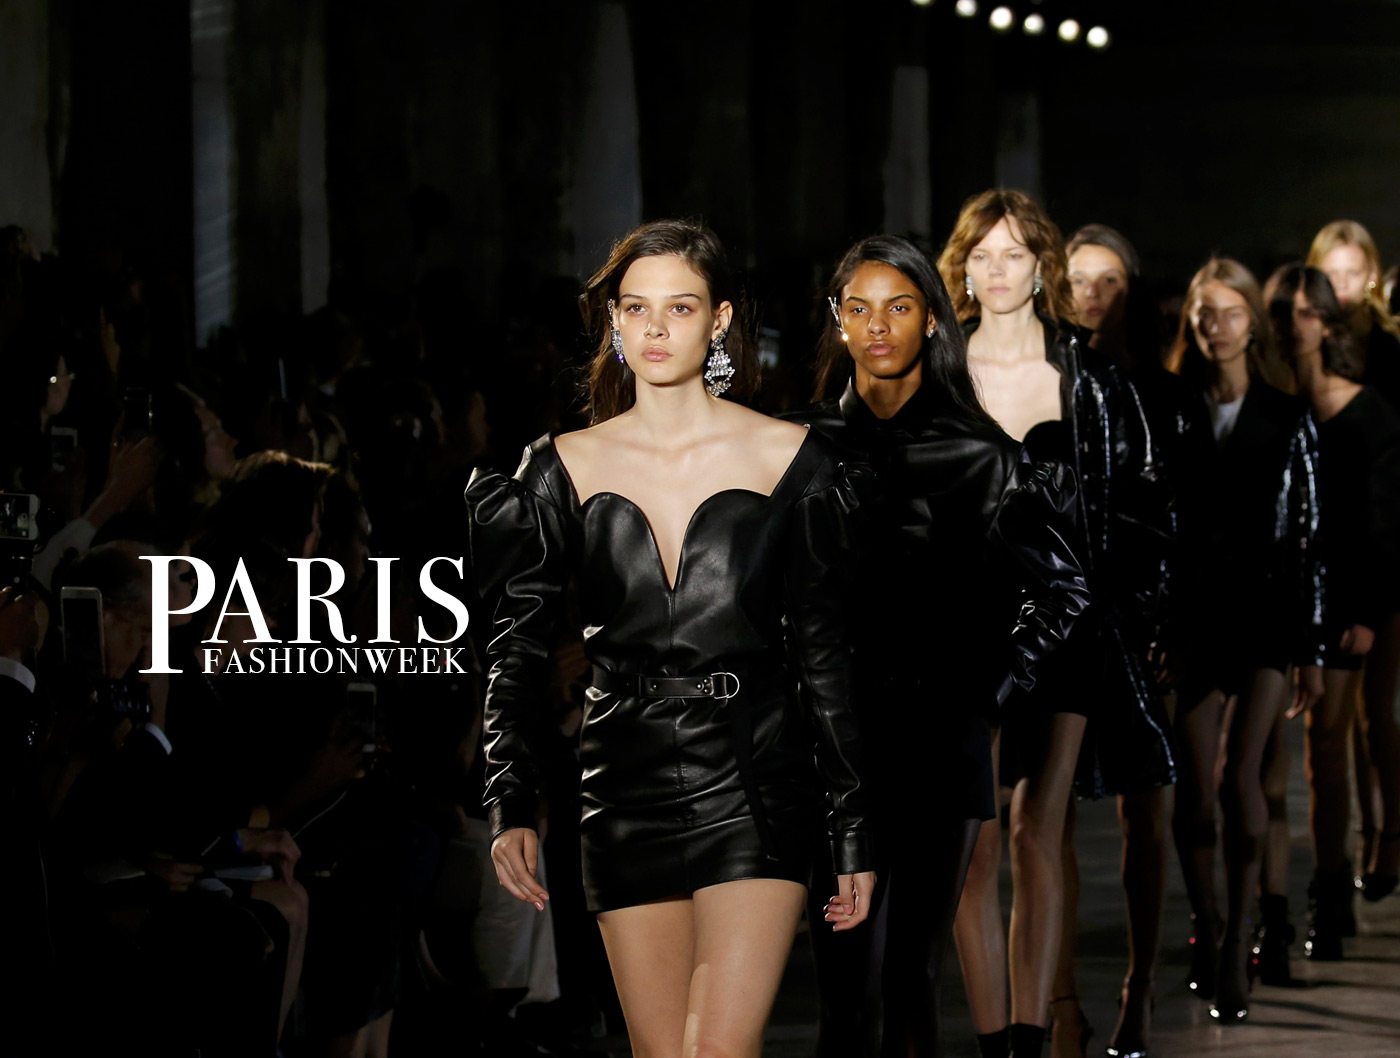 paris fashion week alta moda haute couture glamour saint laurent